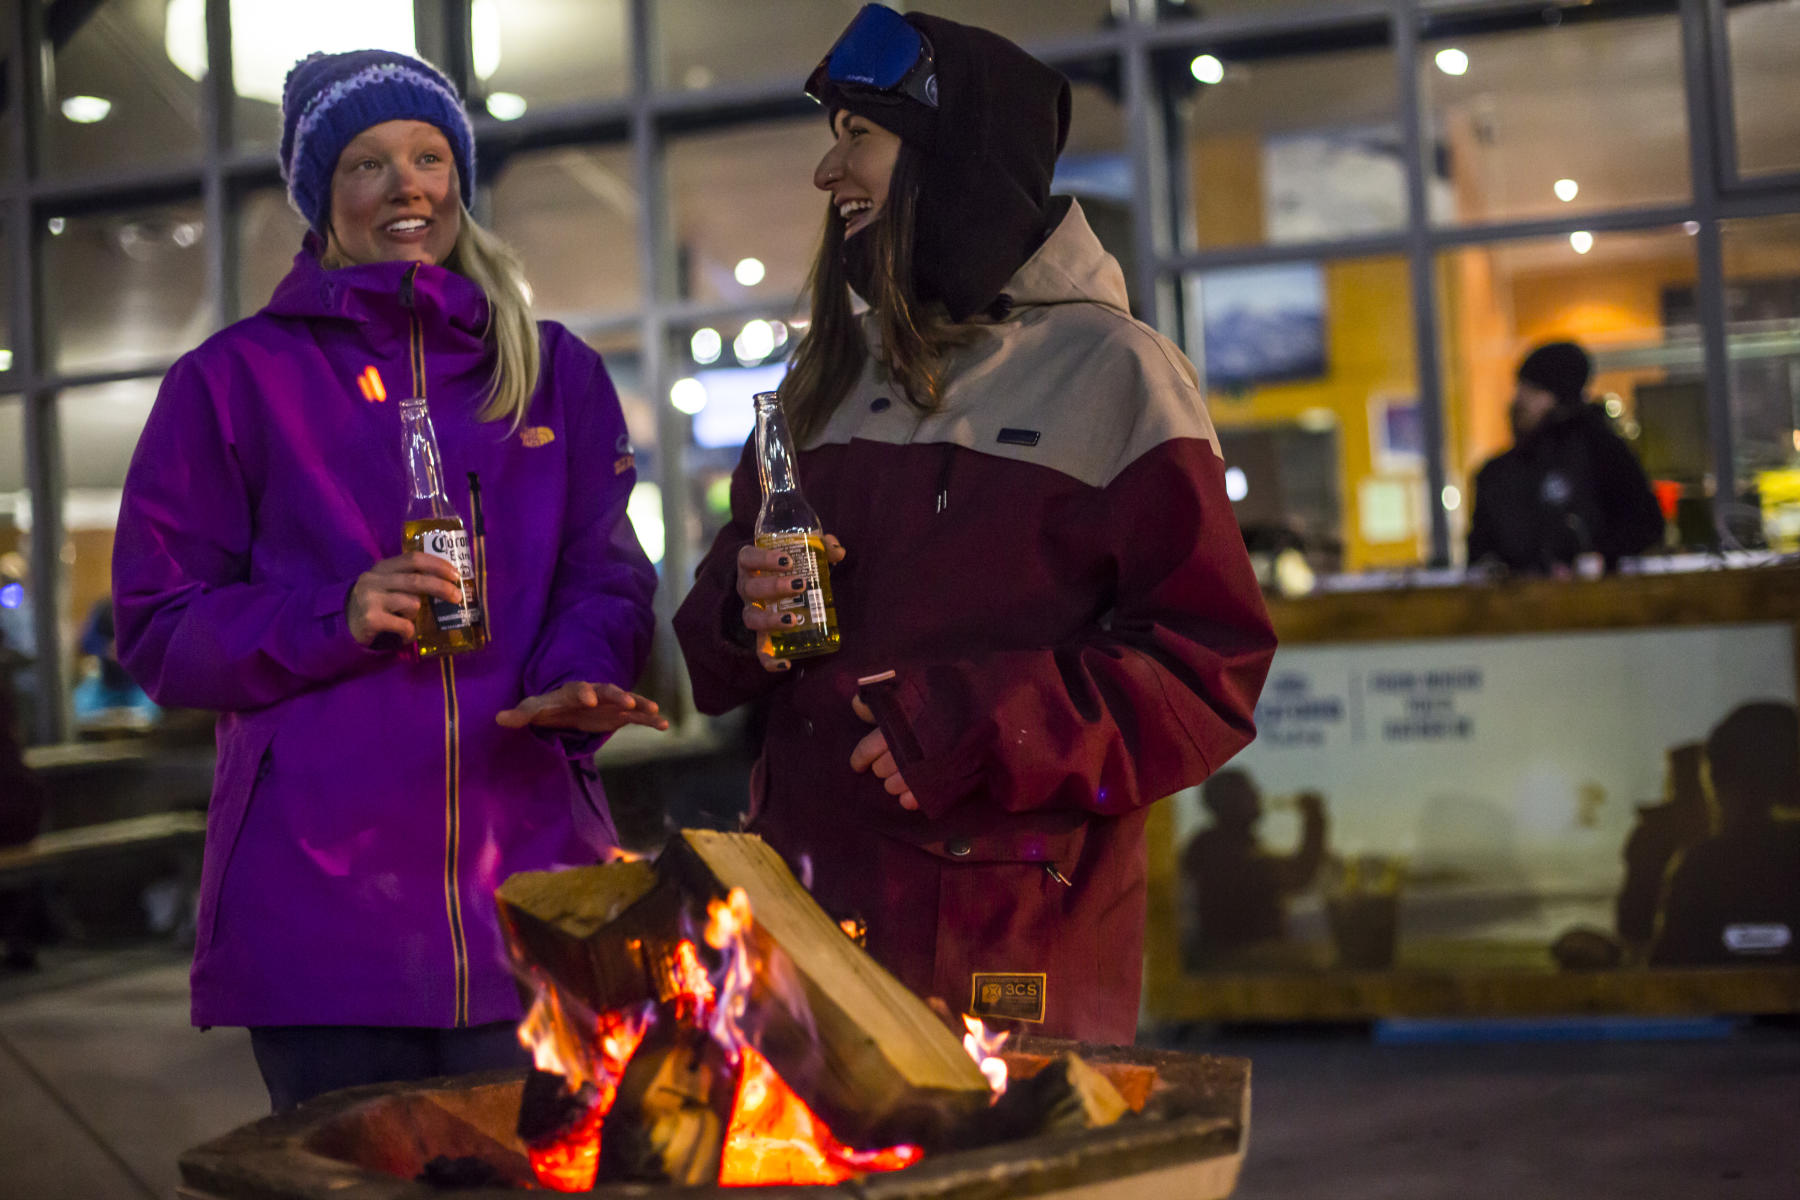 Coronet Peak night ski and beverages